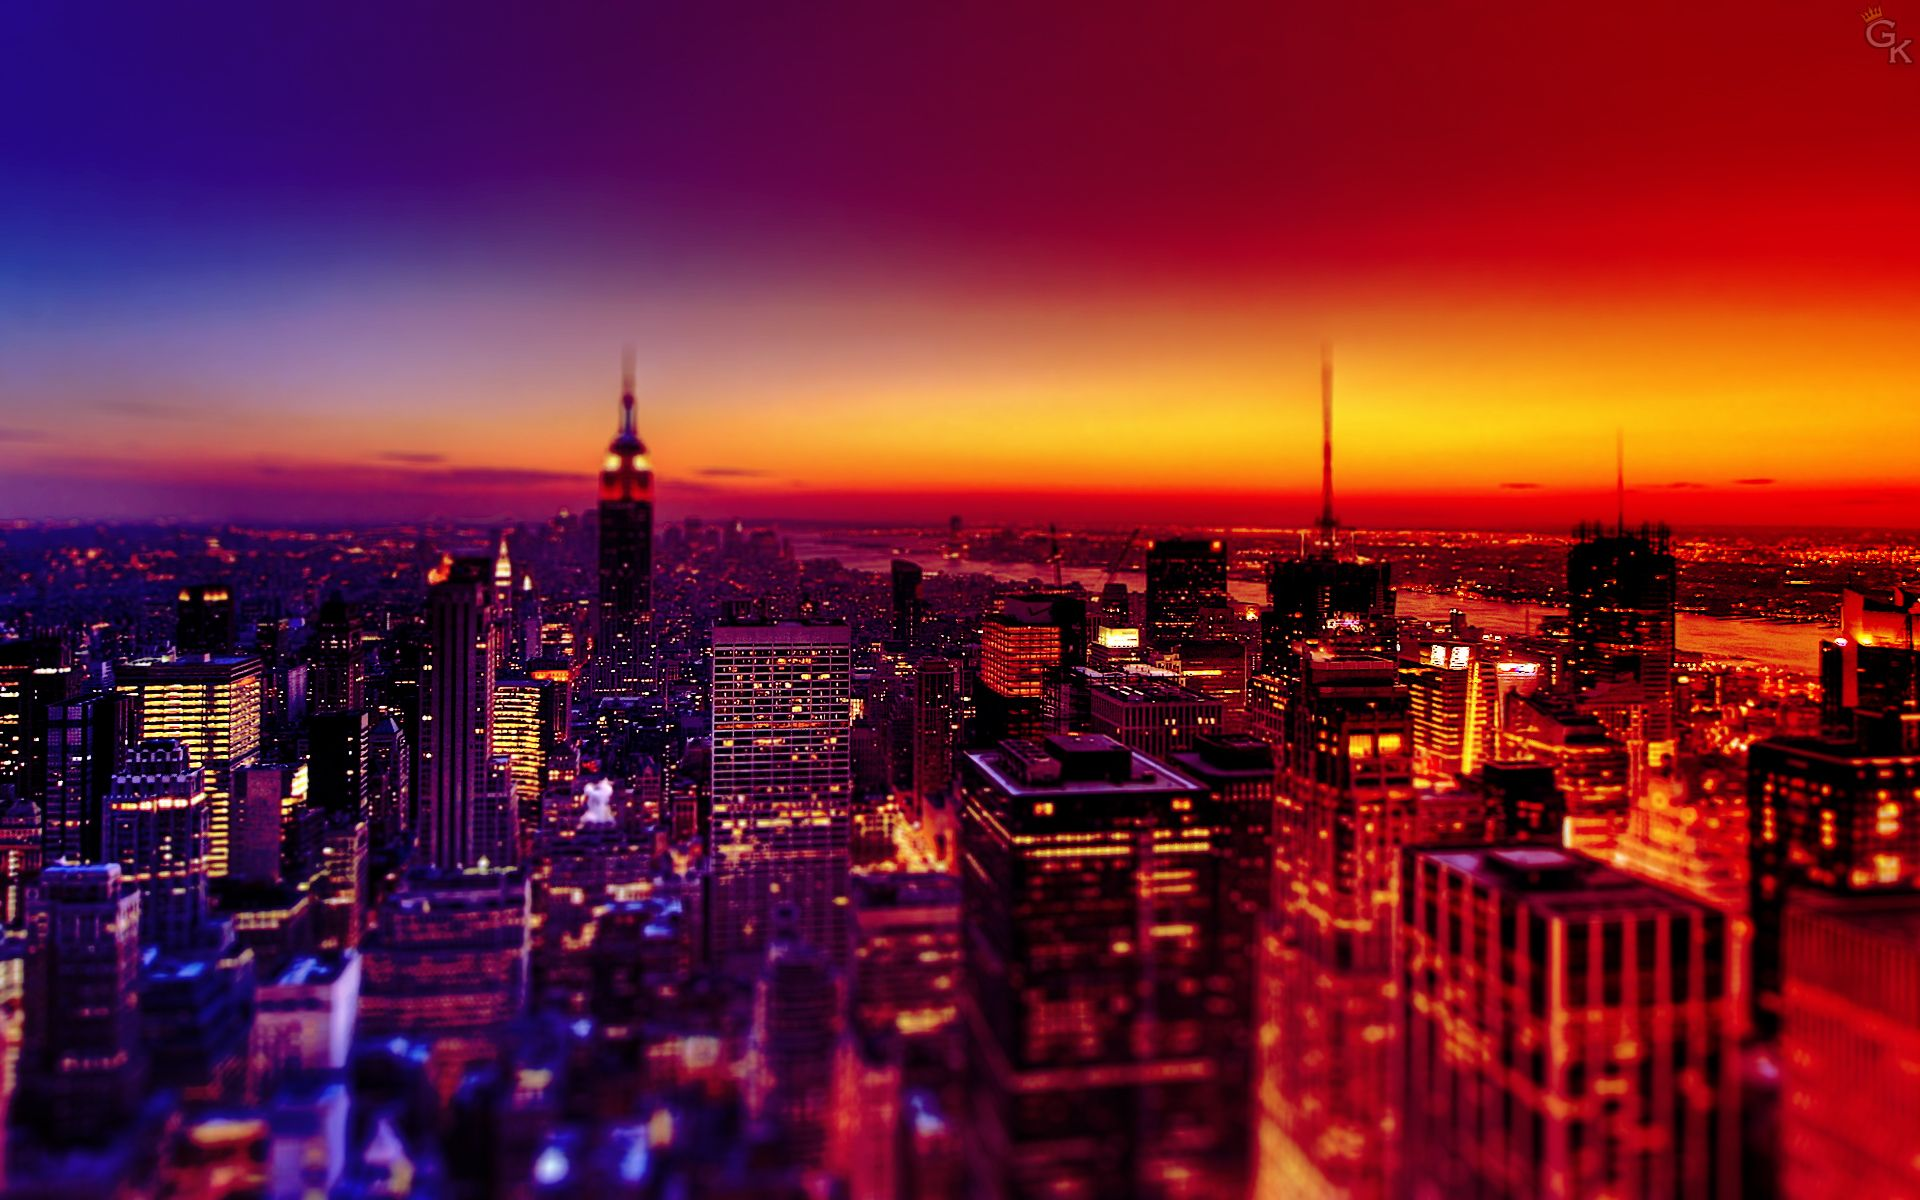 Night City Wallpapers Mobile City Wallpaper Night City City Landscape